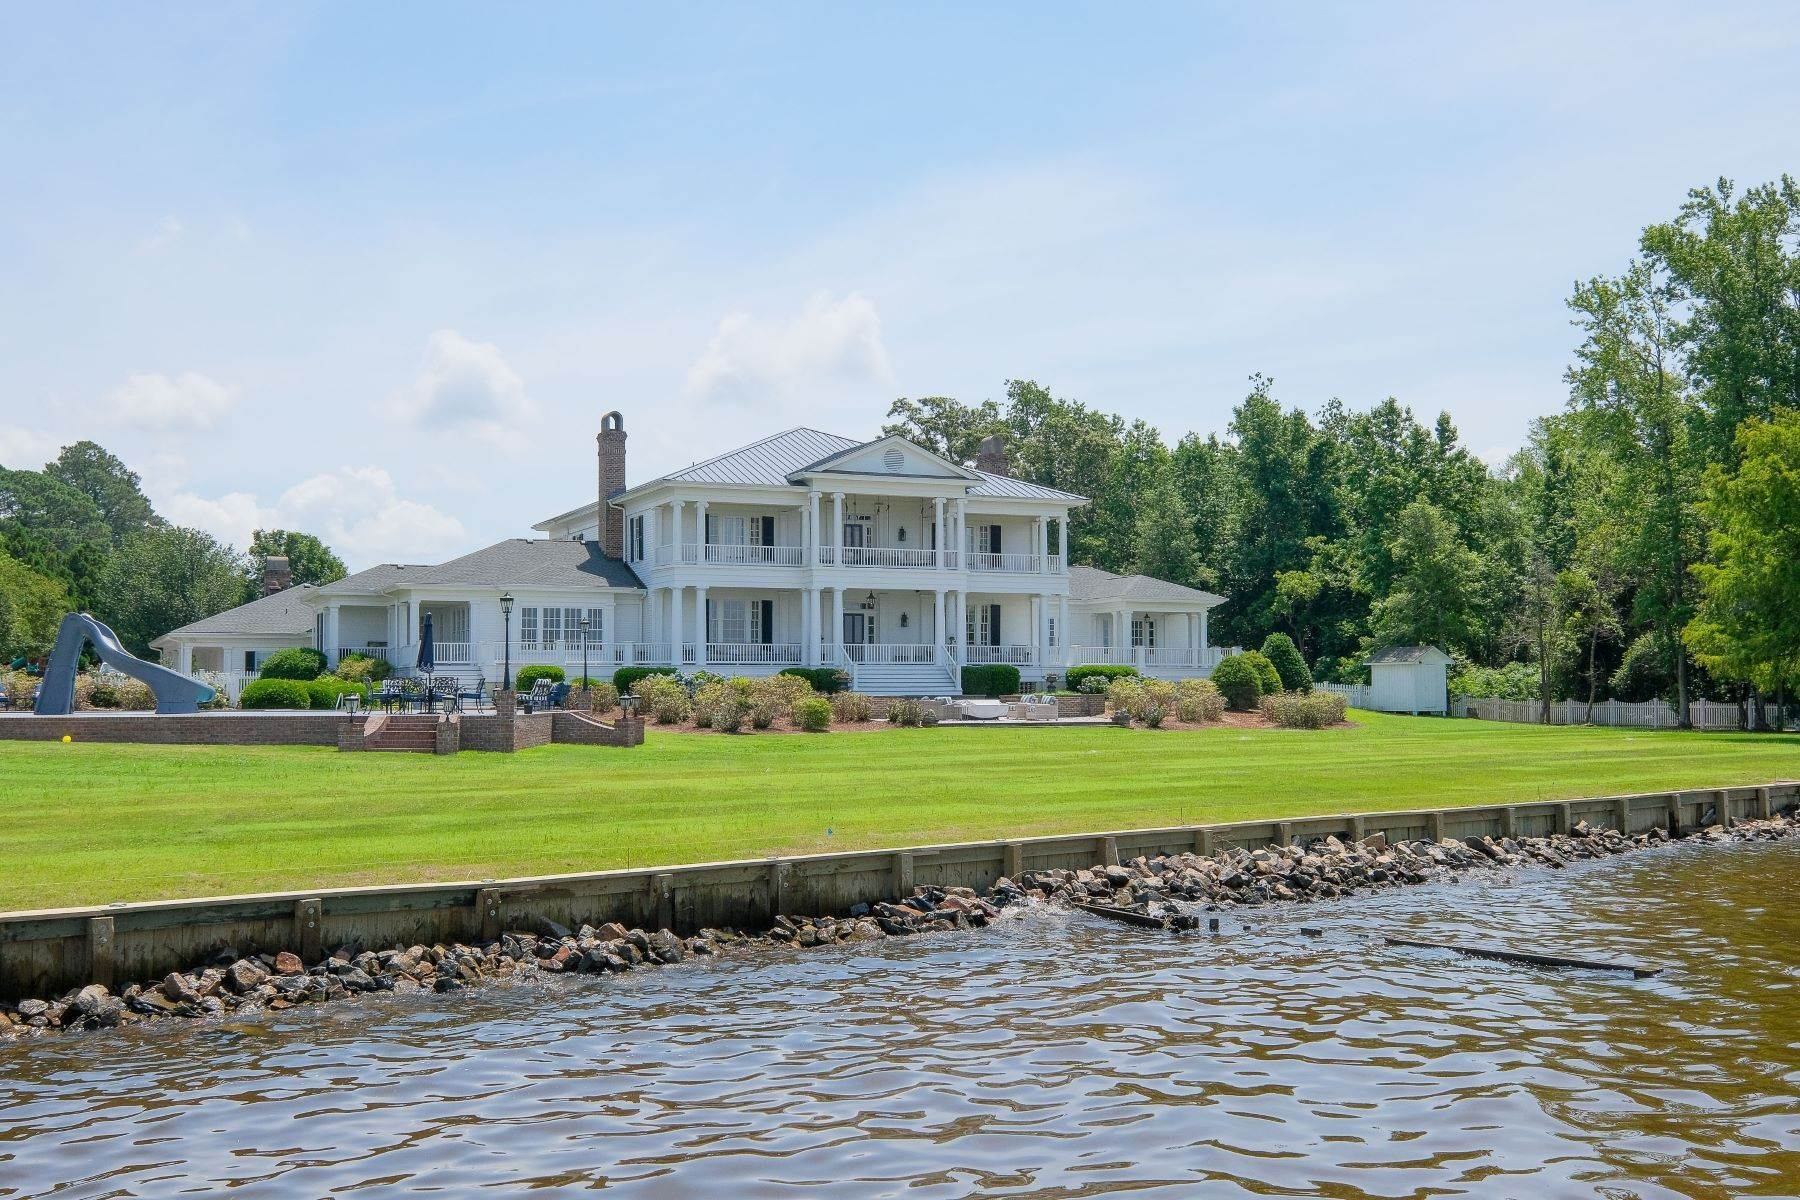 Single Family Homes for Sale at UNPARALLELED WATERFRONT ESTATE 210 Blair Court Edenton, North Carolina 27932 United States